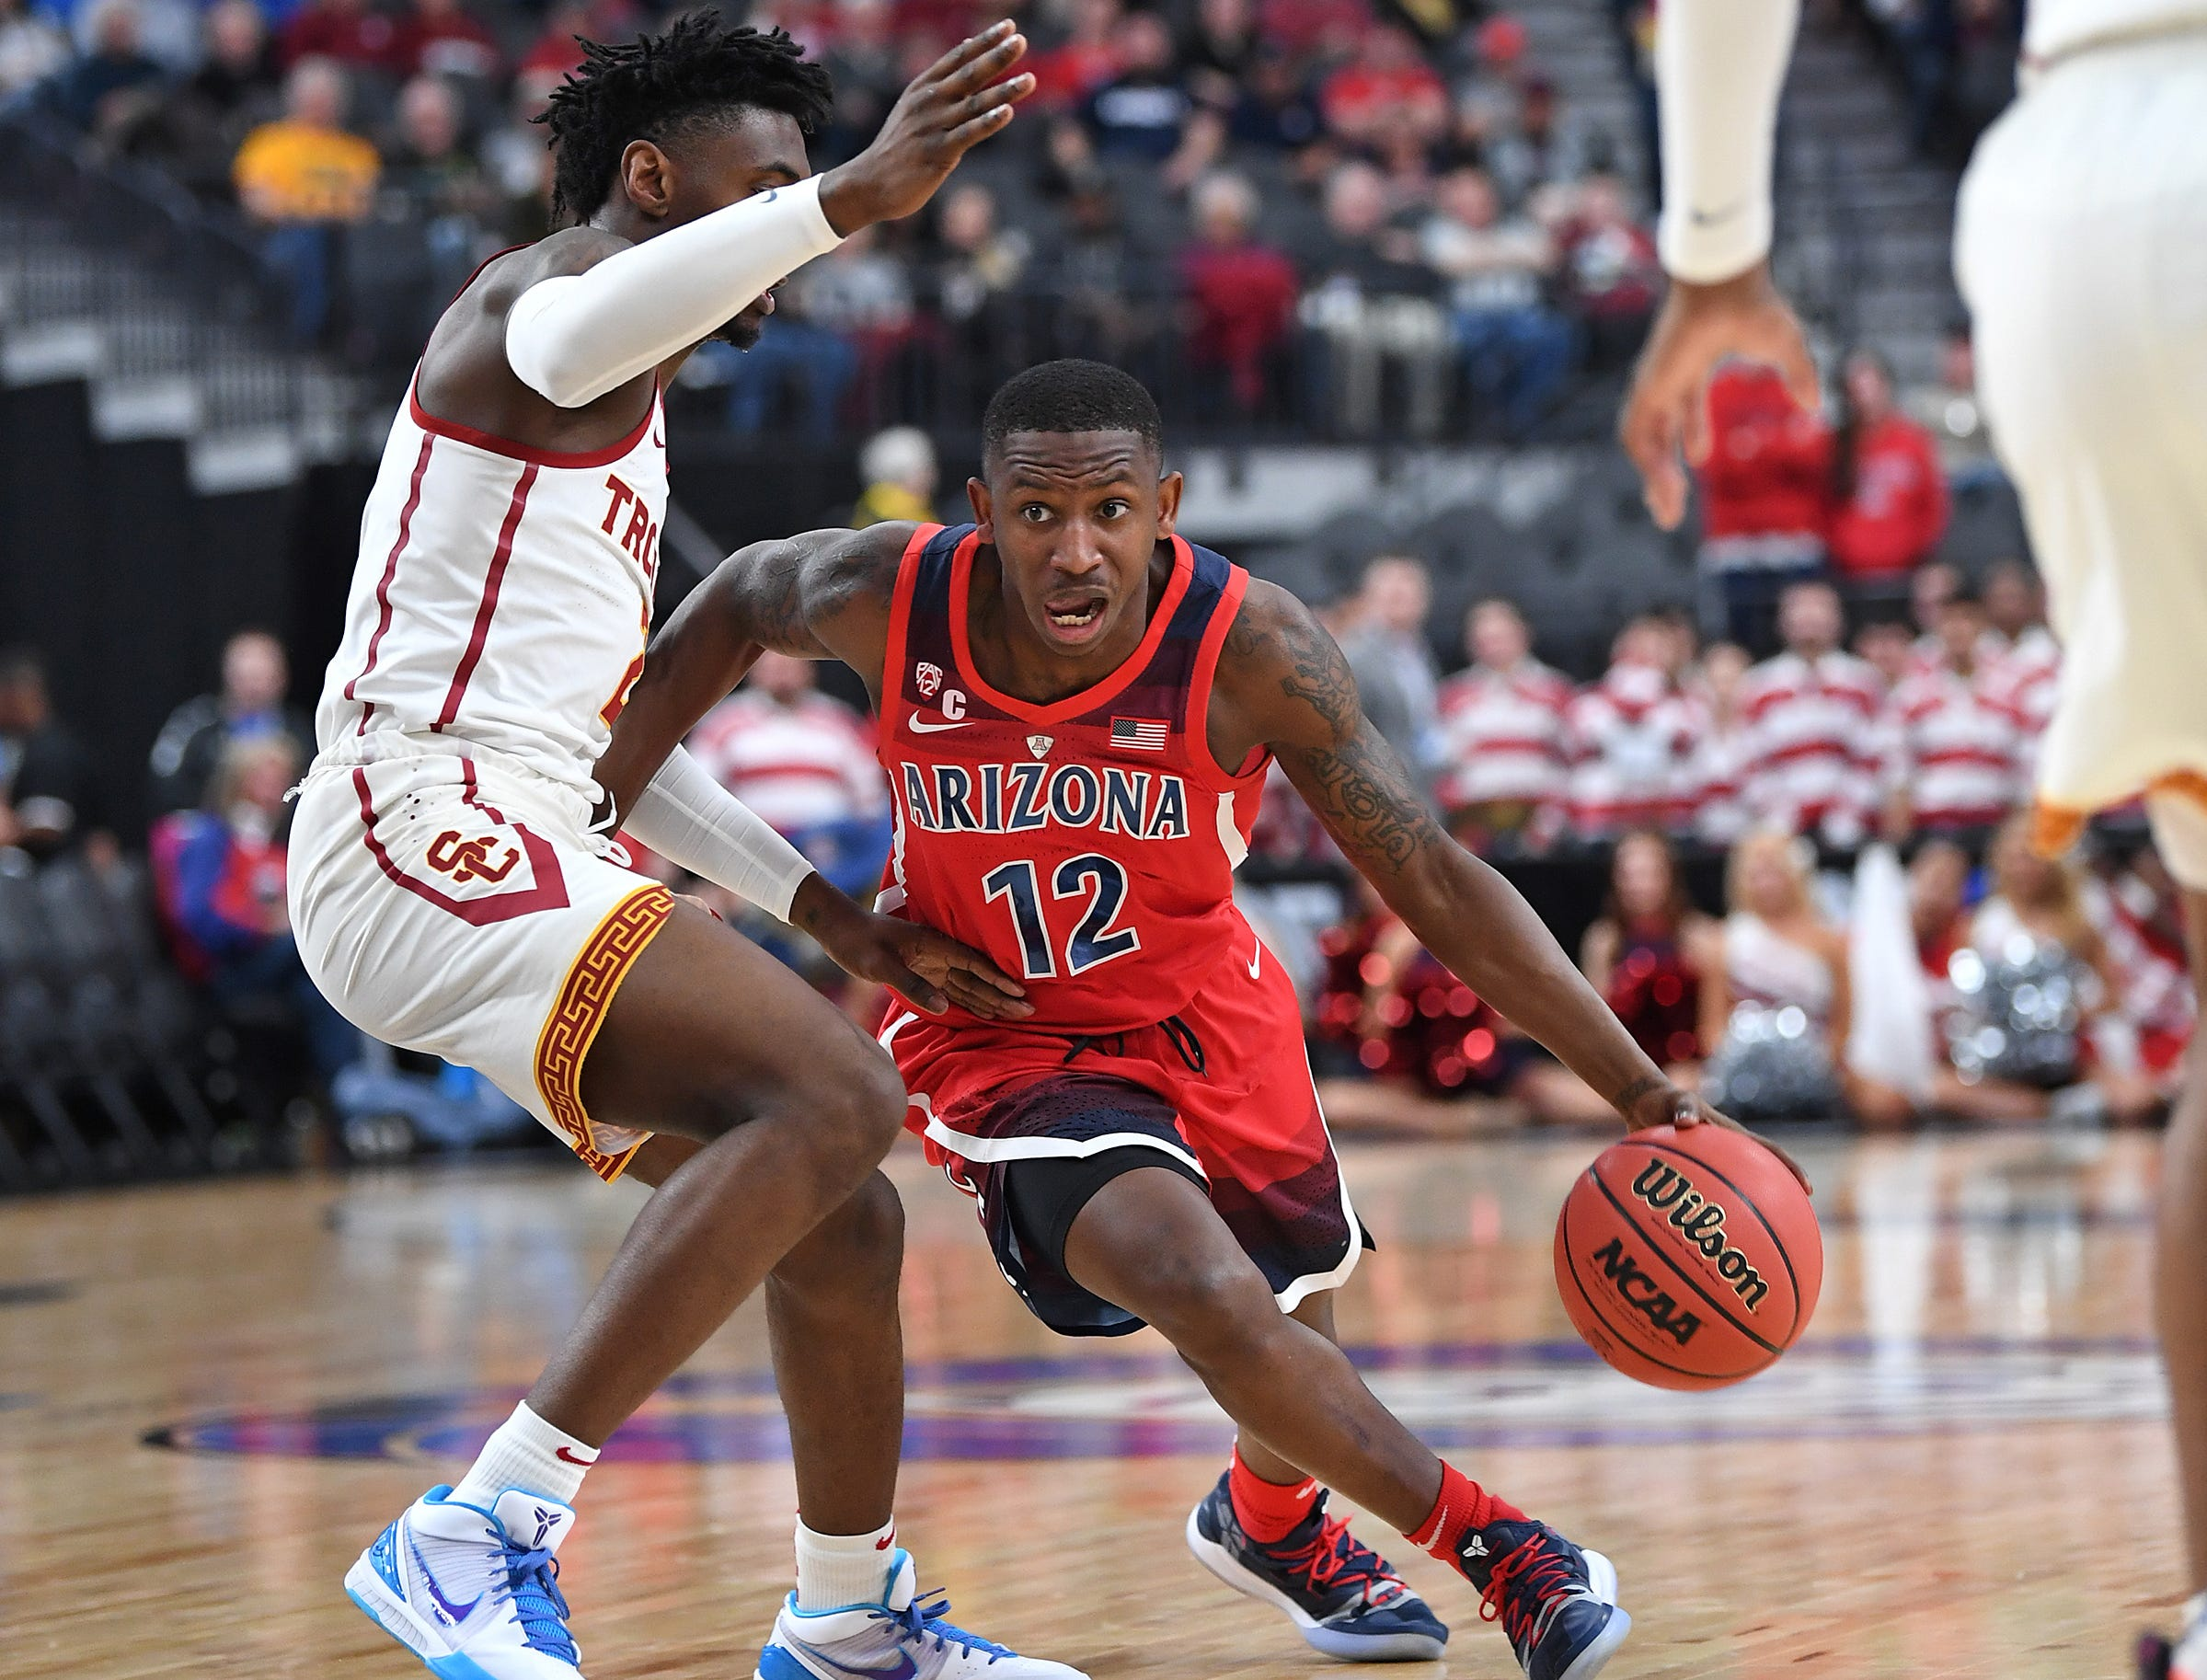 Mar 13, 2019; Las Vegas, NV, United States; Arizona Wildcats guard Justin Coleman (12) dribbles during the first half against the USC Trojans in a Pac-12 conference tournament game at T-Mobile Arena. Mandatory Credit: Stephen R. Sylvanie-USA TODAY Sports